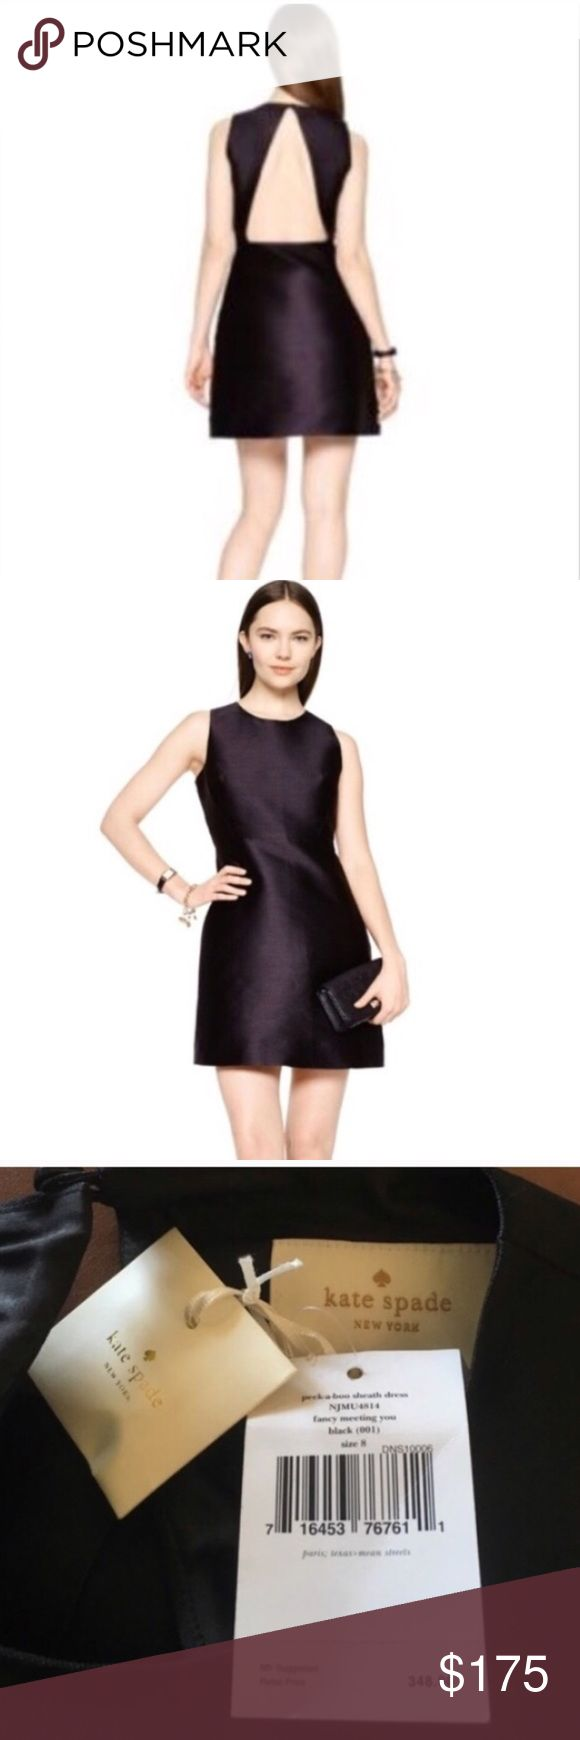 NWT Kate Spade Peek a Boo Black Sheath Dress Super cute and dramatic from the Back! FEATURES 89% polyester, 11% silk 100% polyester lining FIT sheath dress with slightly flared skirt. DETAILS v shaped cutout on back of dress sleeveless  and round neck . dry clean only kate spade Dresses